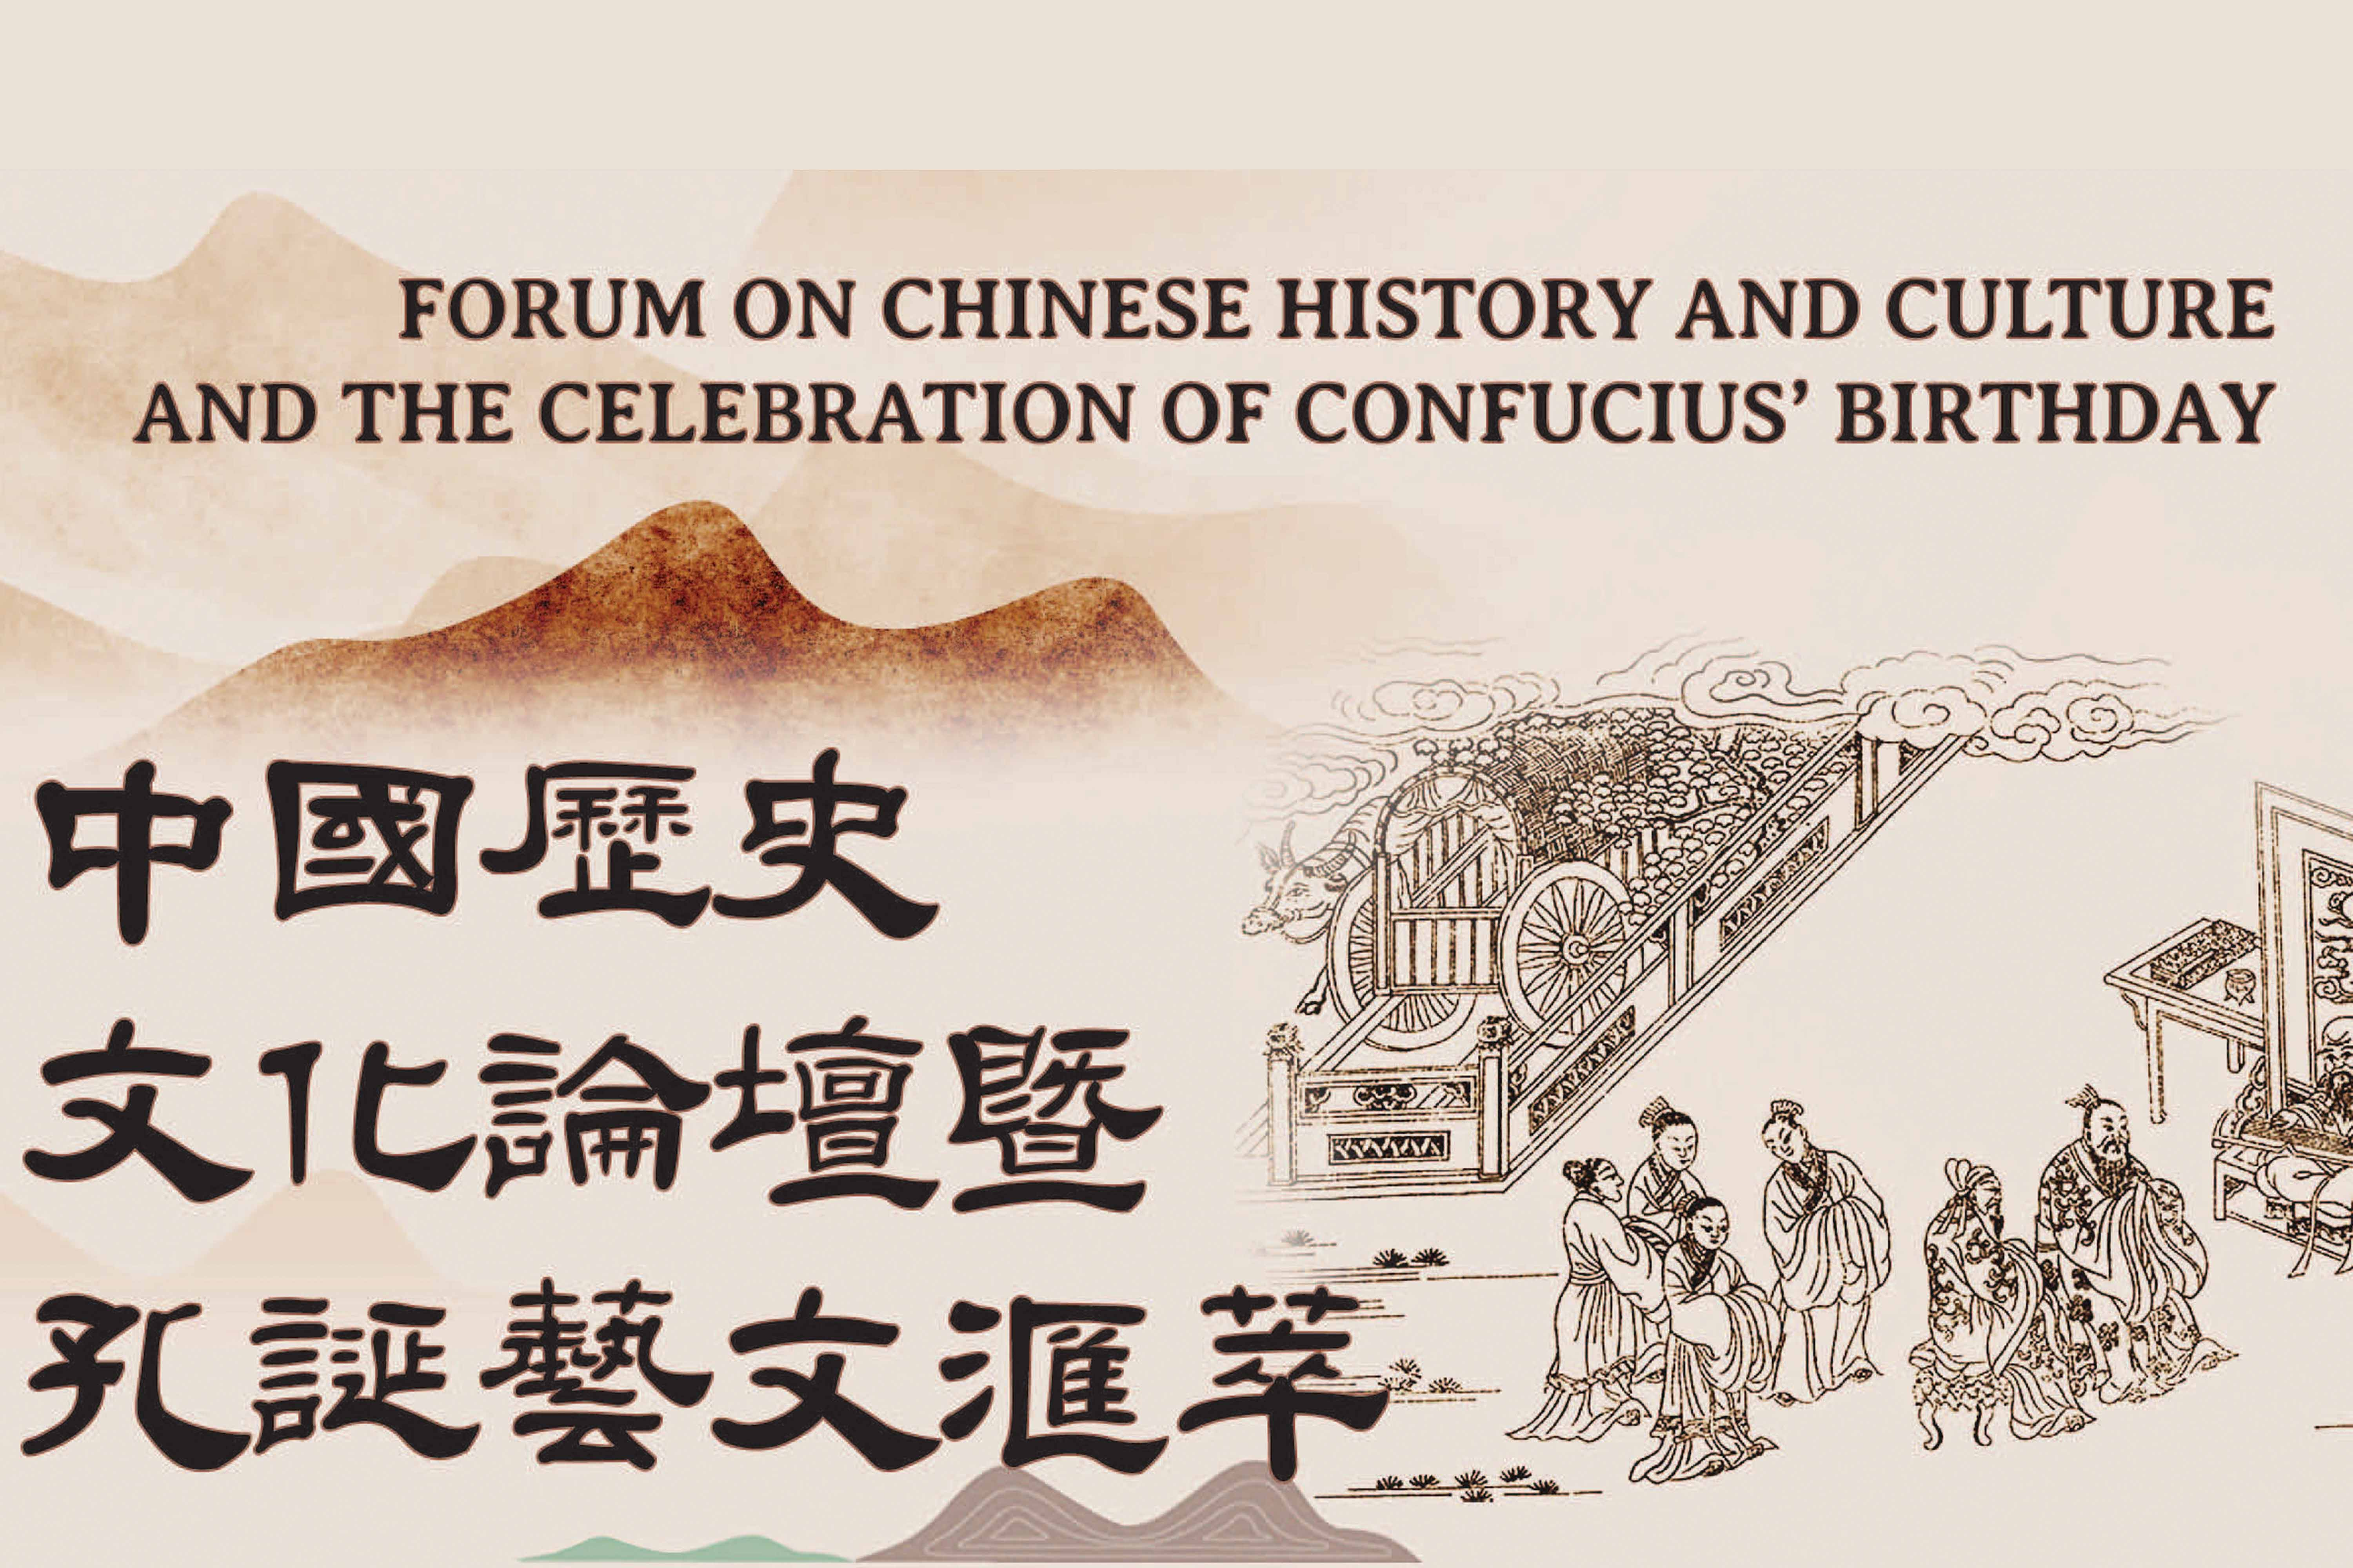 UM will hold the Forum on Chinese History and Culture and the Celebration of Confucius' Birthday next Thursday